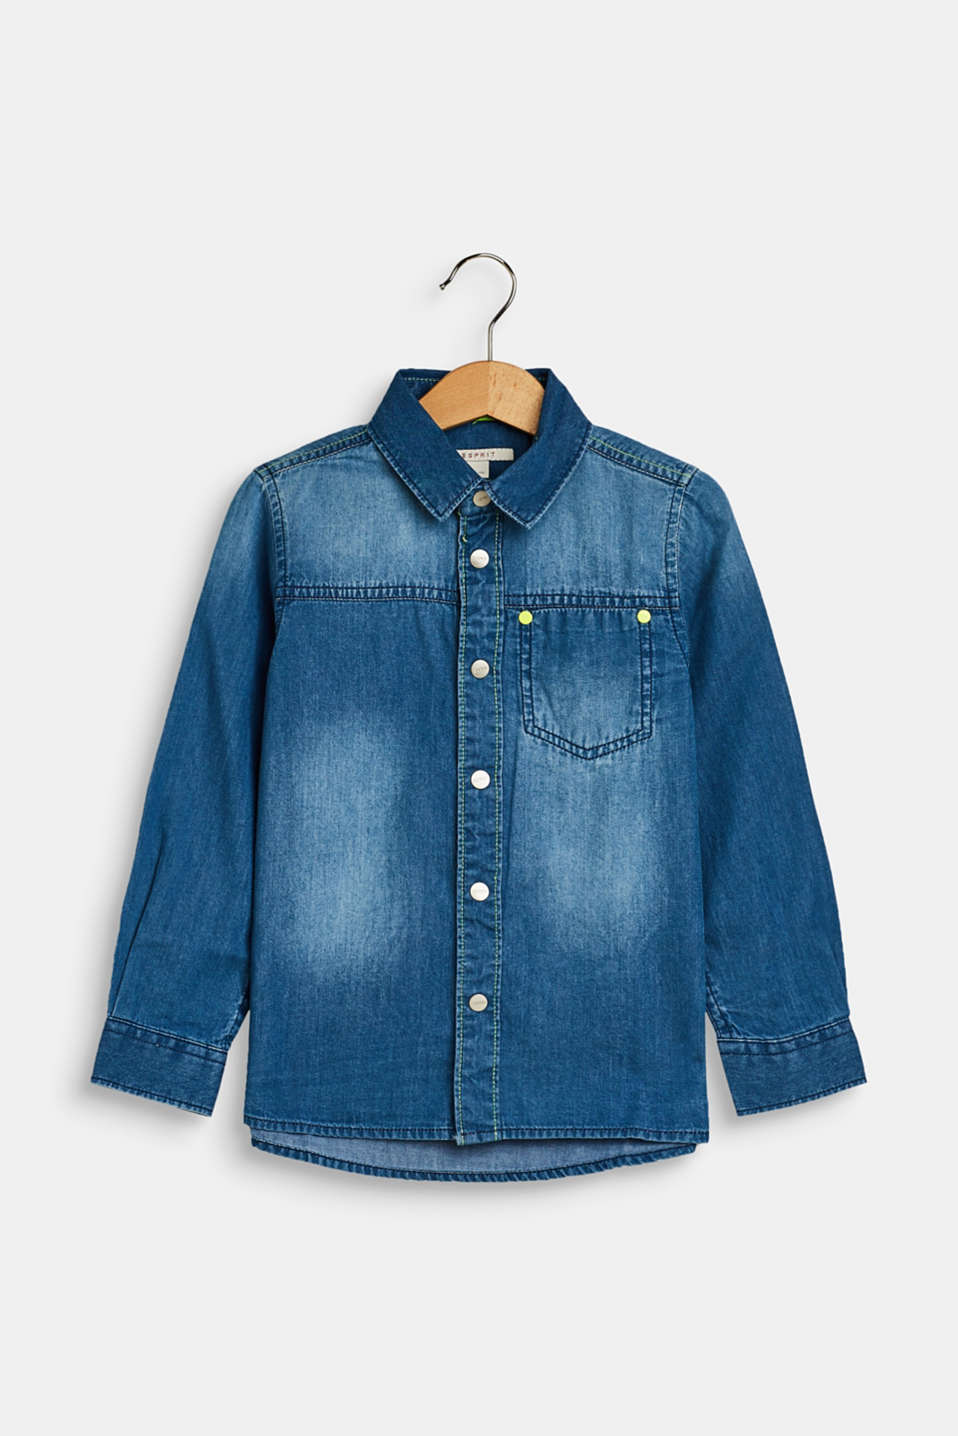 Esprit - 02 - denim shirt